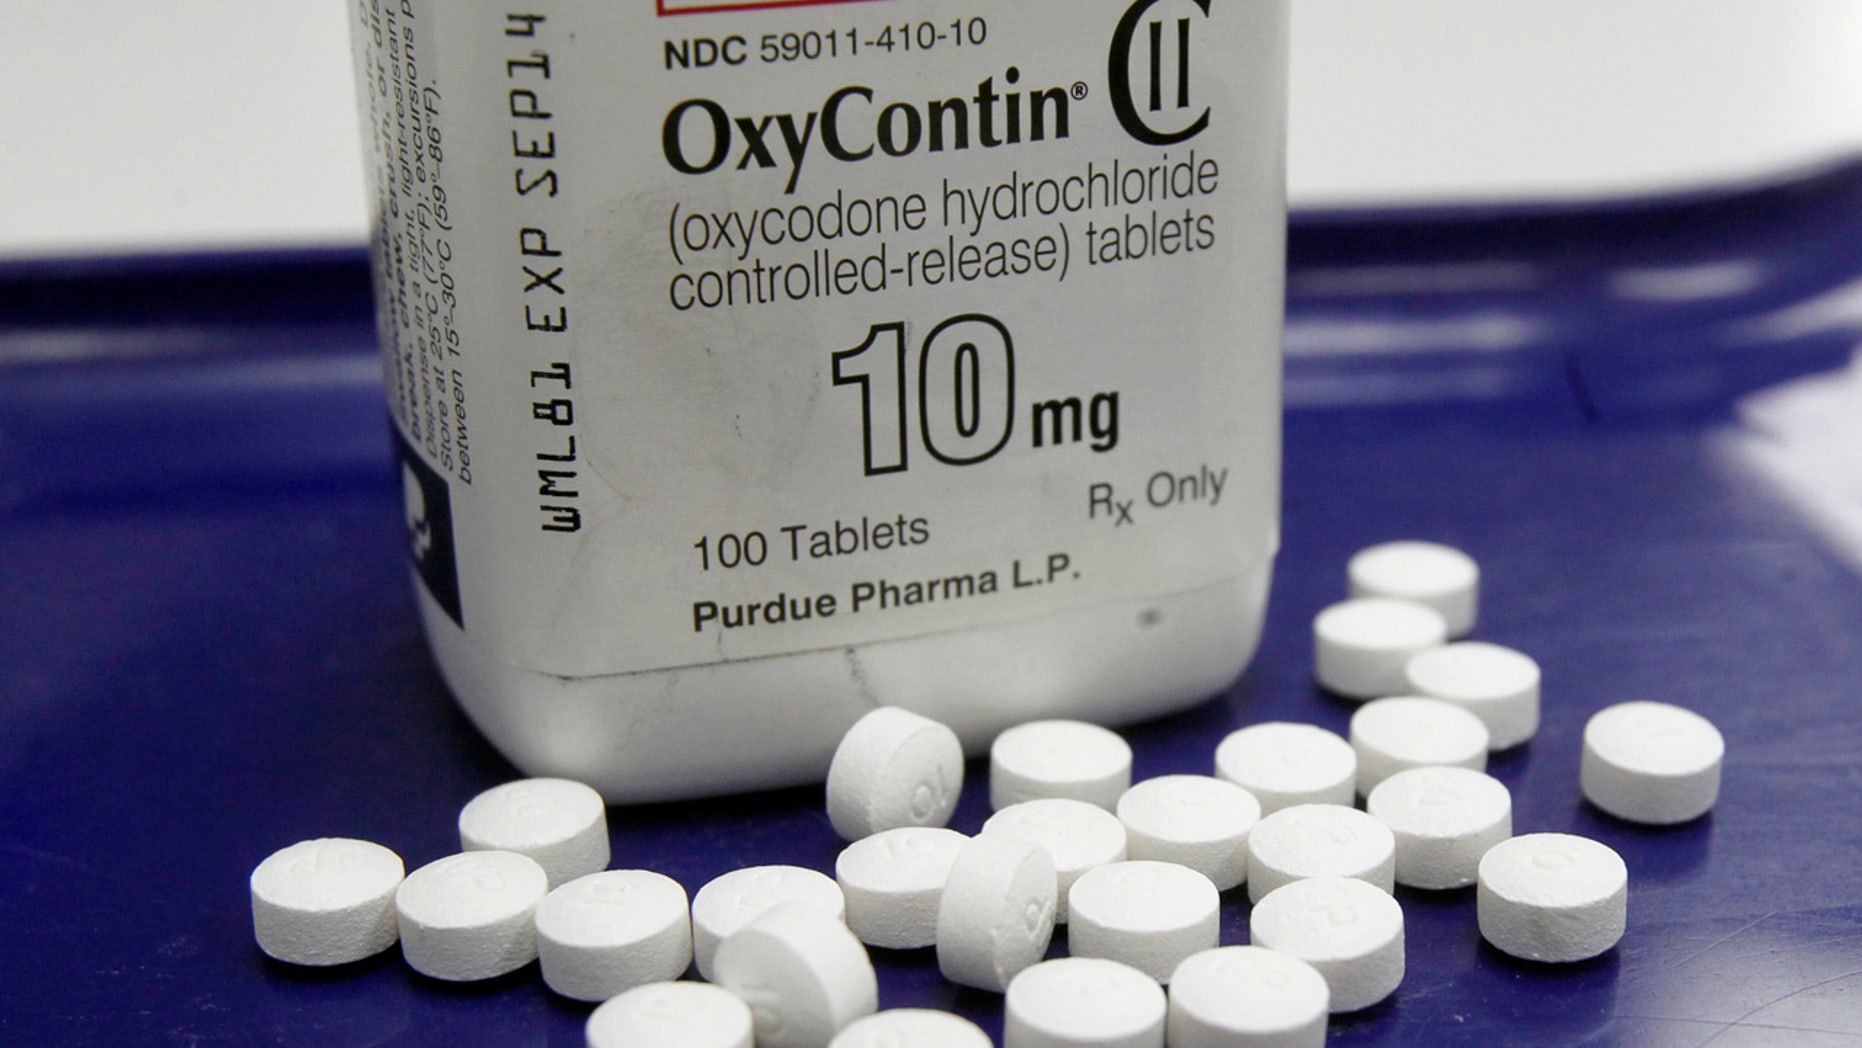 Amid an epidemic of addiction and abuse tied to these powerful opioids drugs, the CDC is urging general doctors to try physical therapy, exercise and over-the-counter pain medications before turning to painkillers for chronic pain.